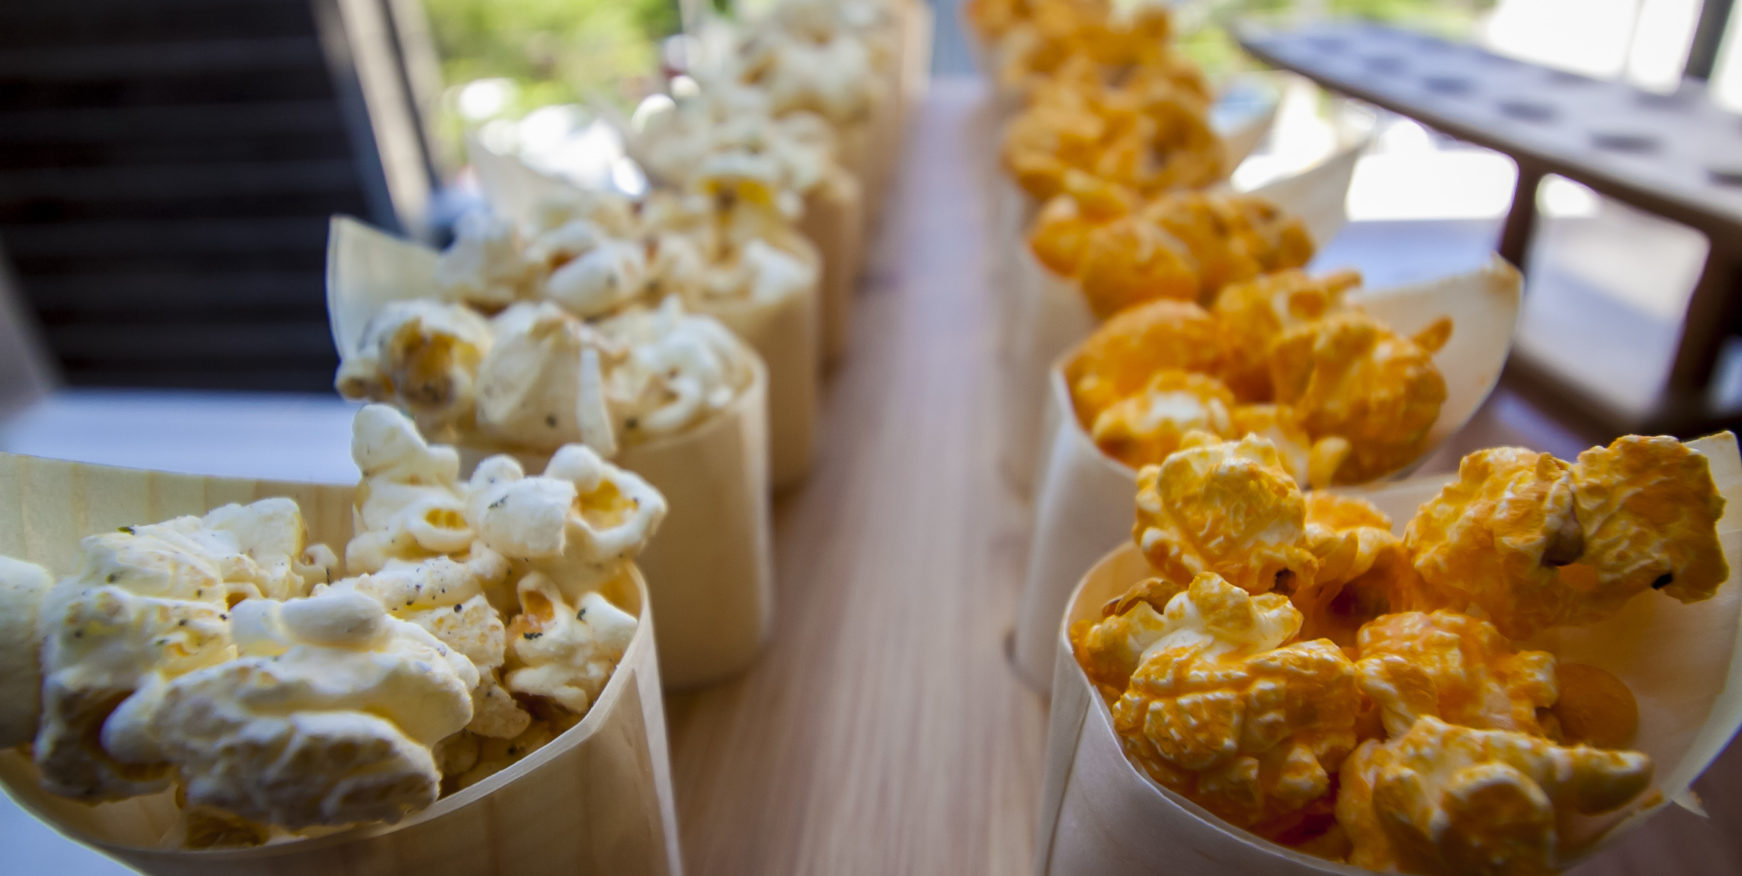 popcorn from our catering partner brown bag popcorn co